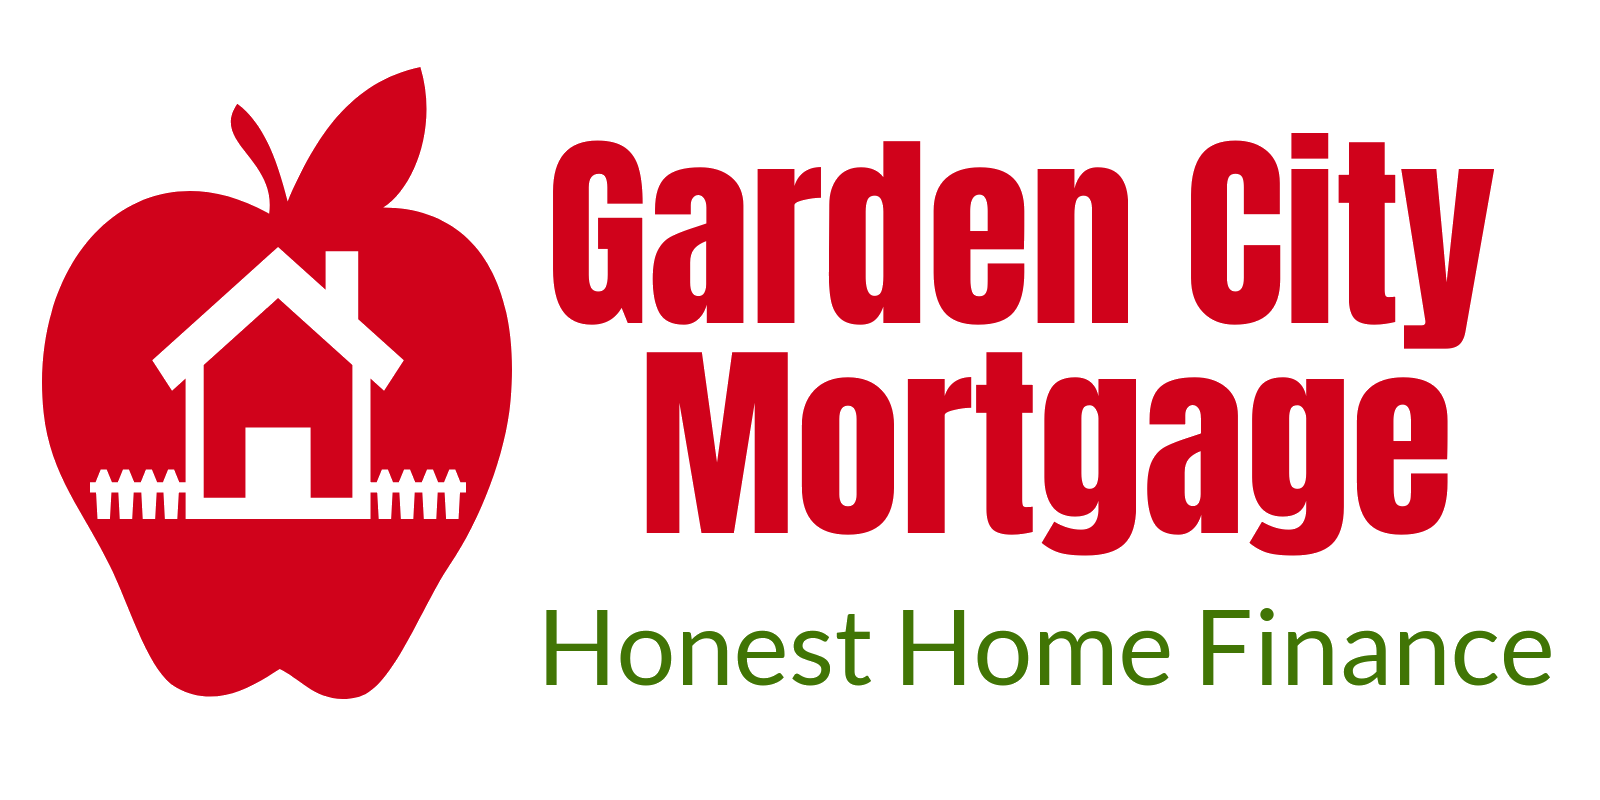 Garden City Mortgage